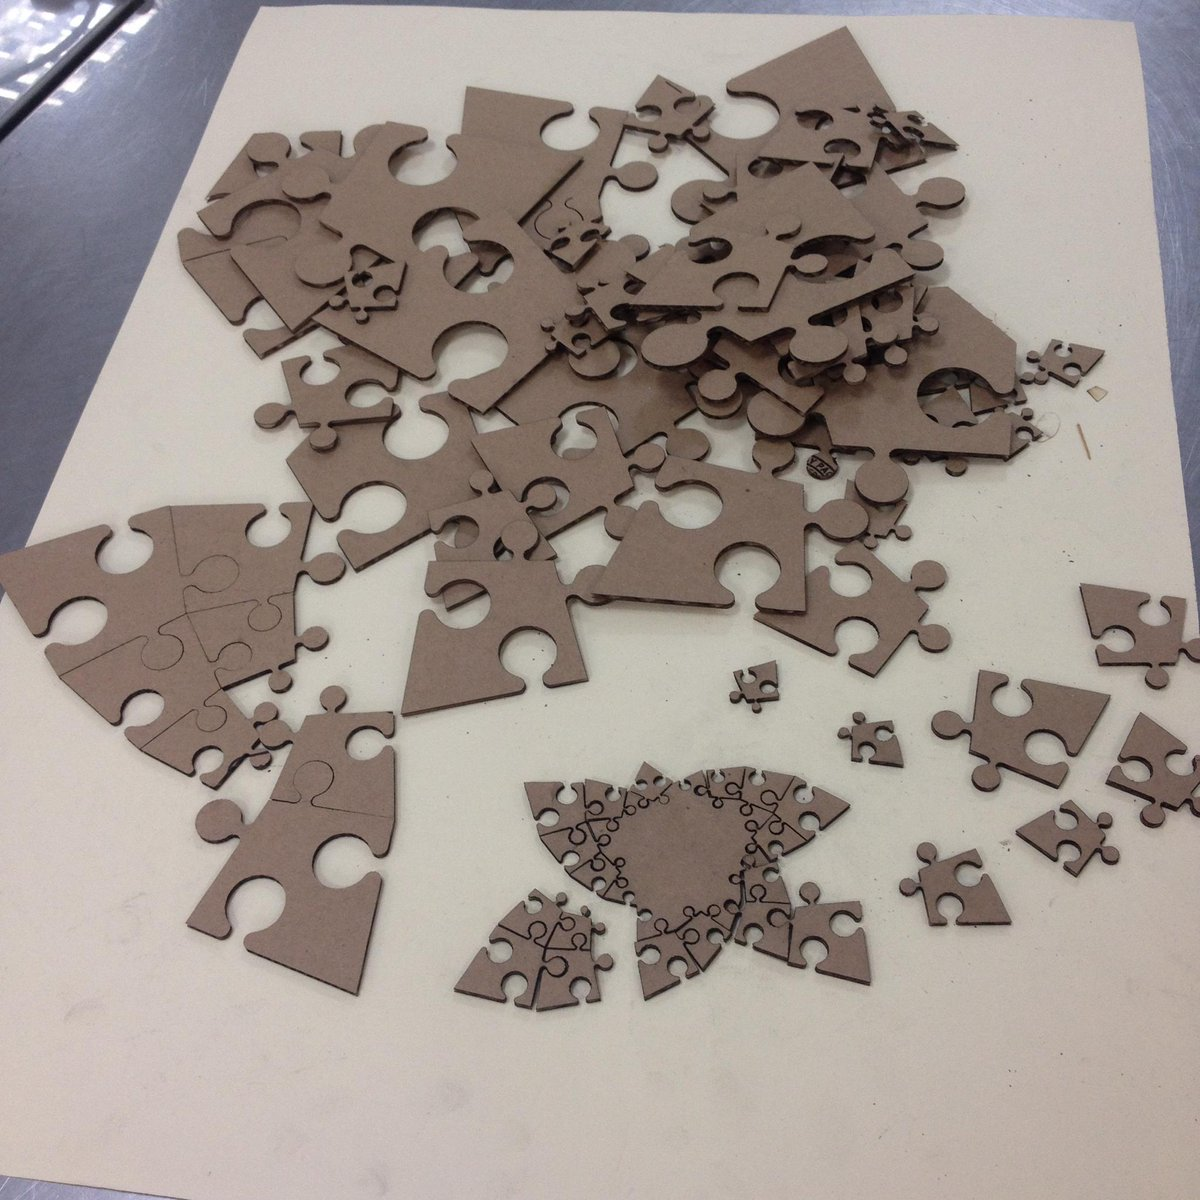 test Twitter Media - Who wants a puzzle? 80 fragile, nearly identical pieces! #makered #lasernightmare http://t.co/eQQxlgZTJR